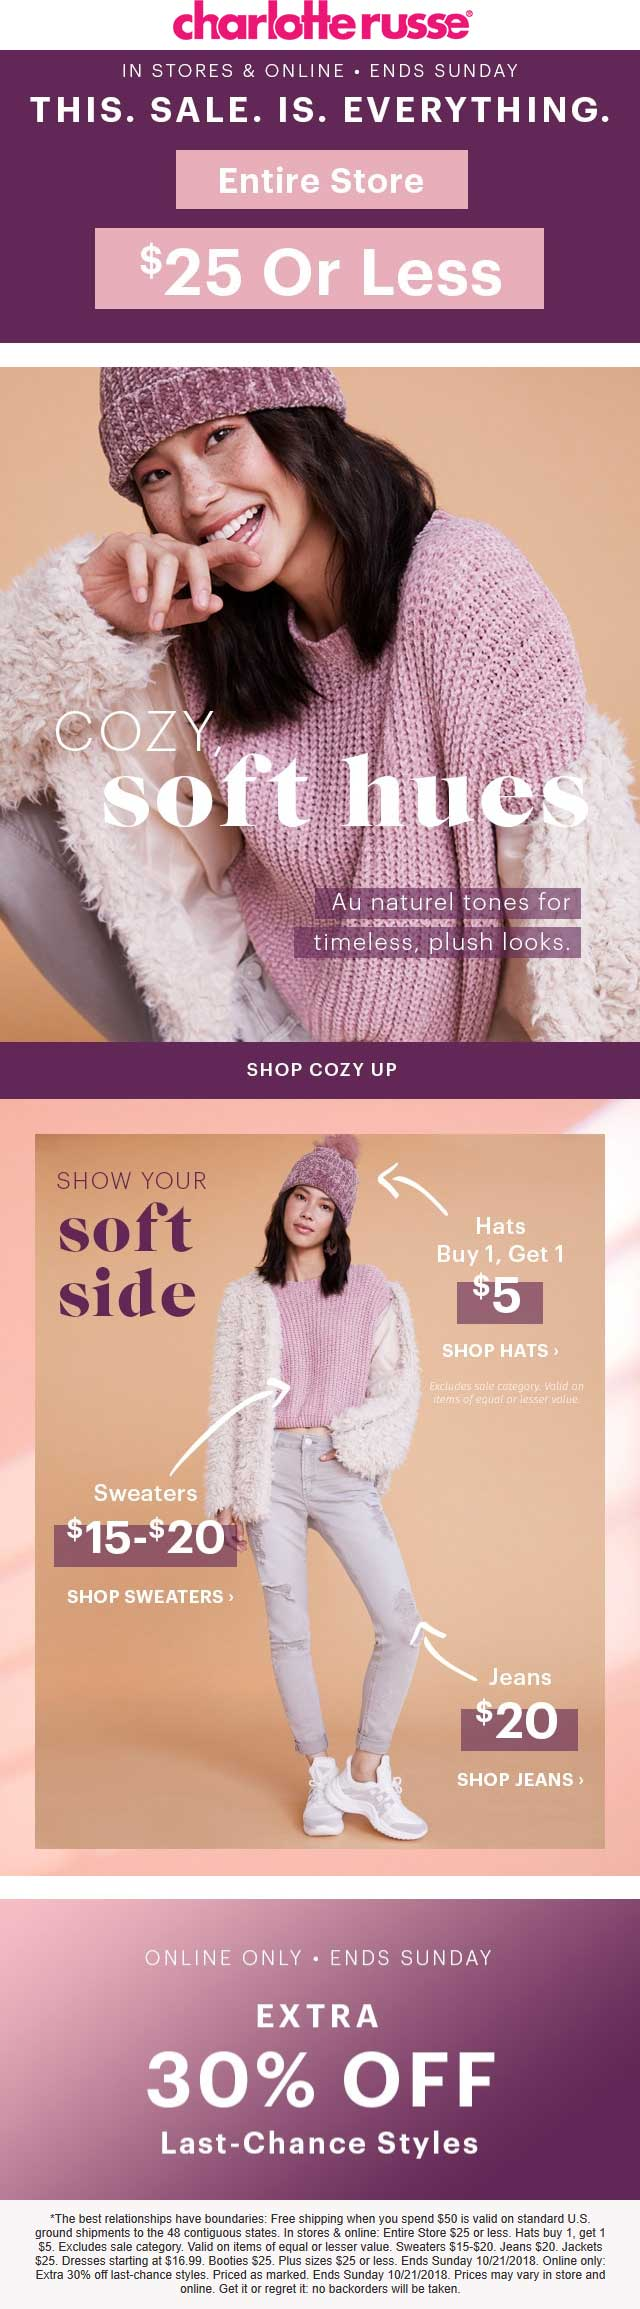 Charlotte Russe Coupon July 2019 Entire store under $26 at Charlotte Russe, ditto online